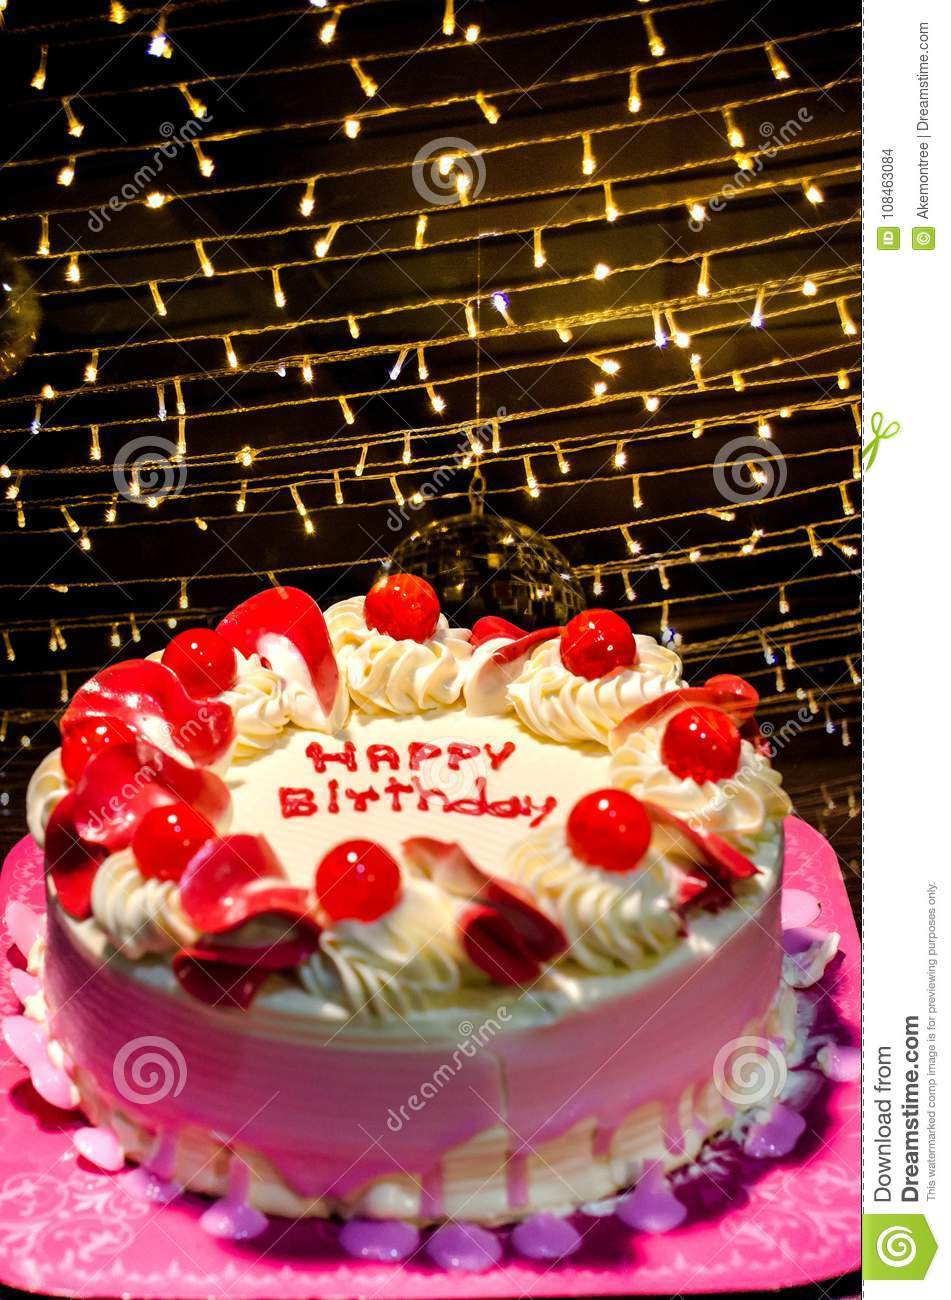 Hbd Cake In Pink White Tone Decorate By Happy Birthday Words In